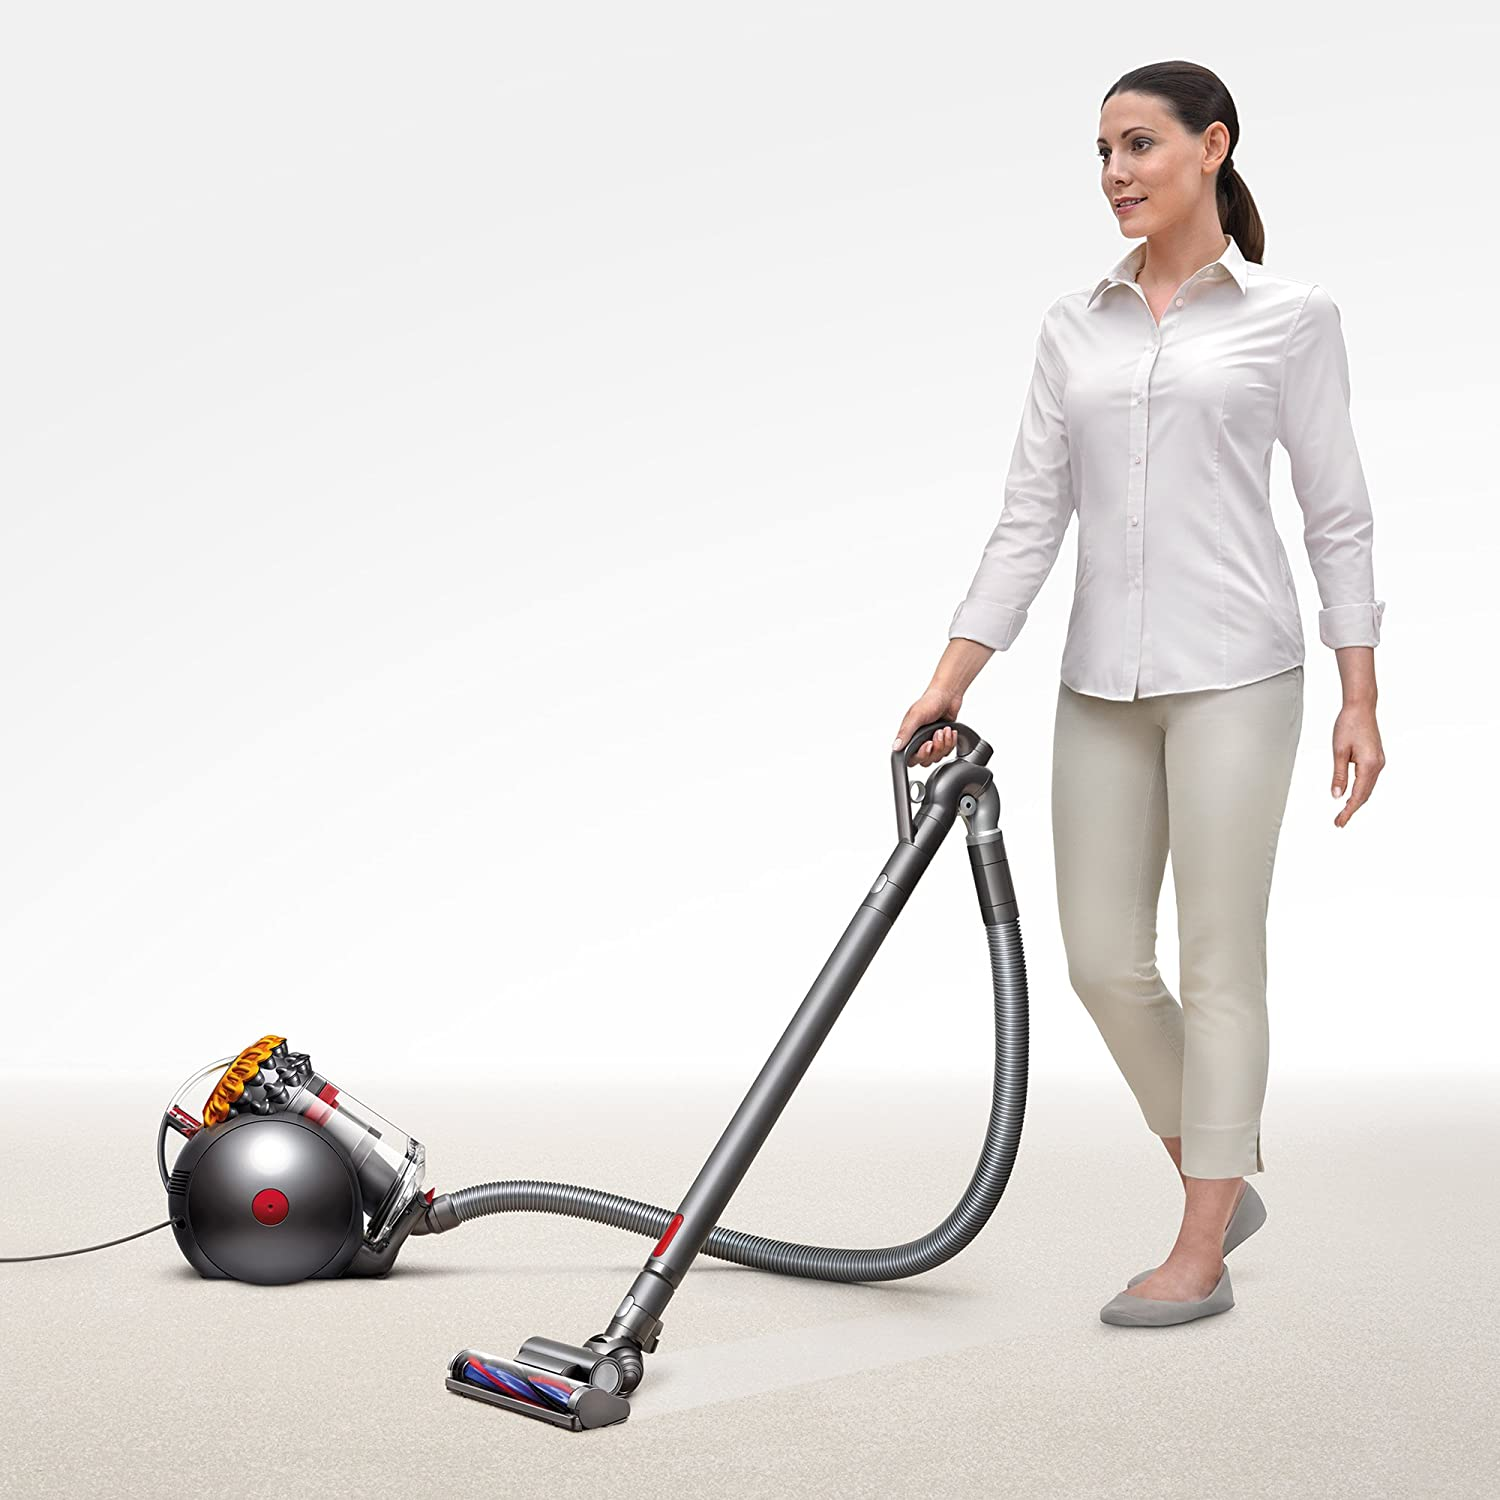 dyson best canister vacuum